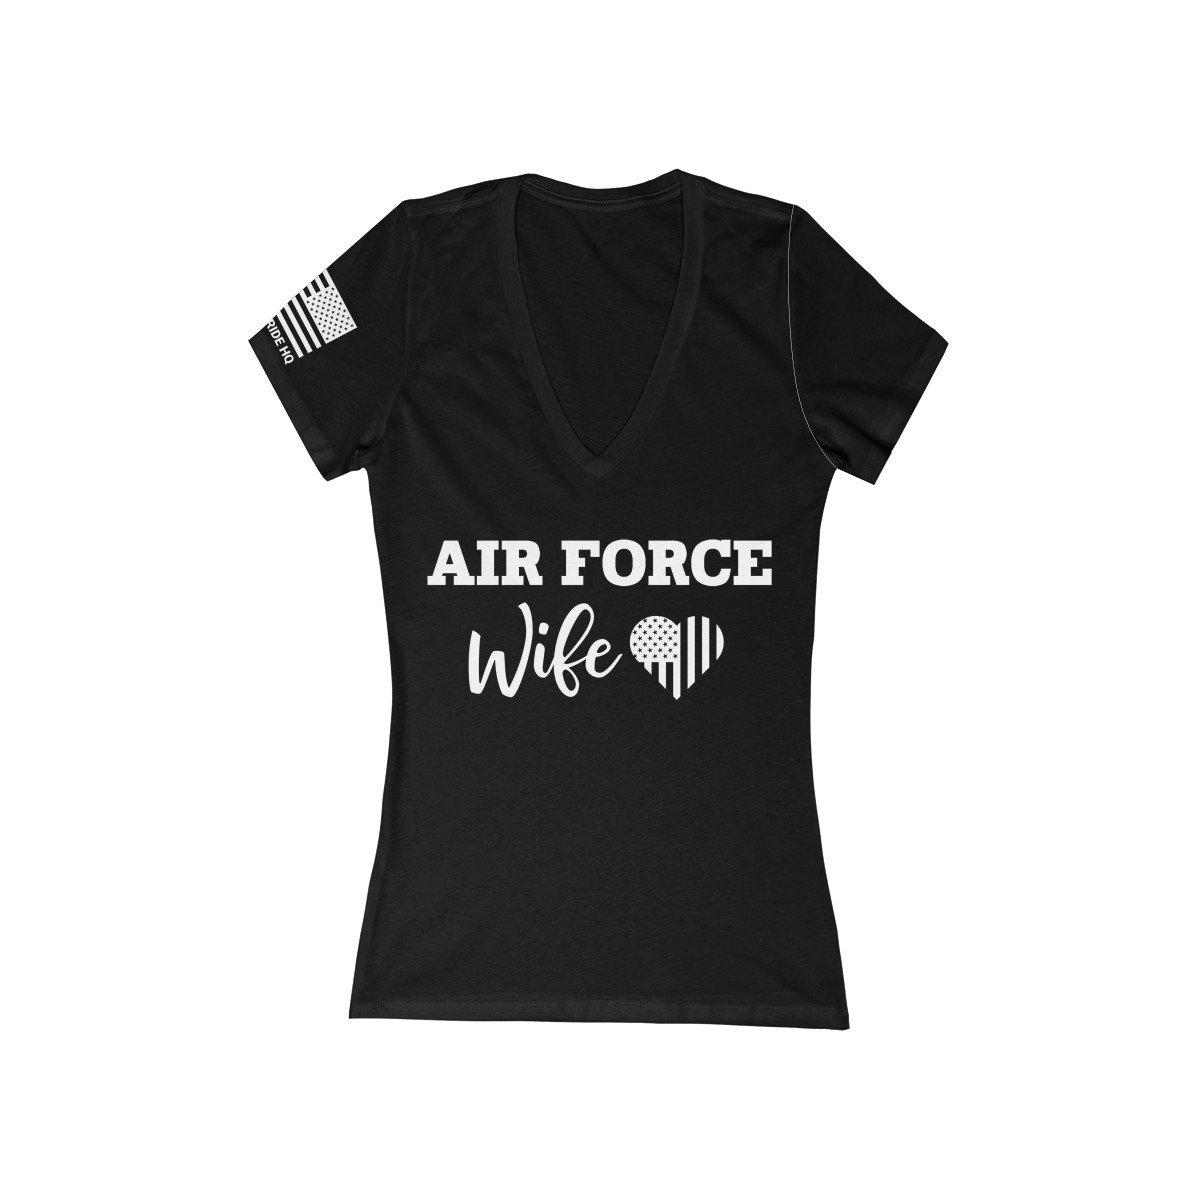 Air Force Wife Women's V-Neck Tee